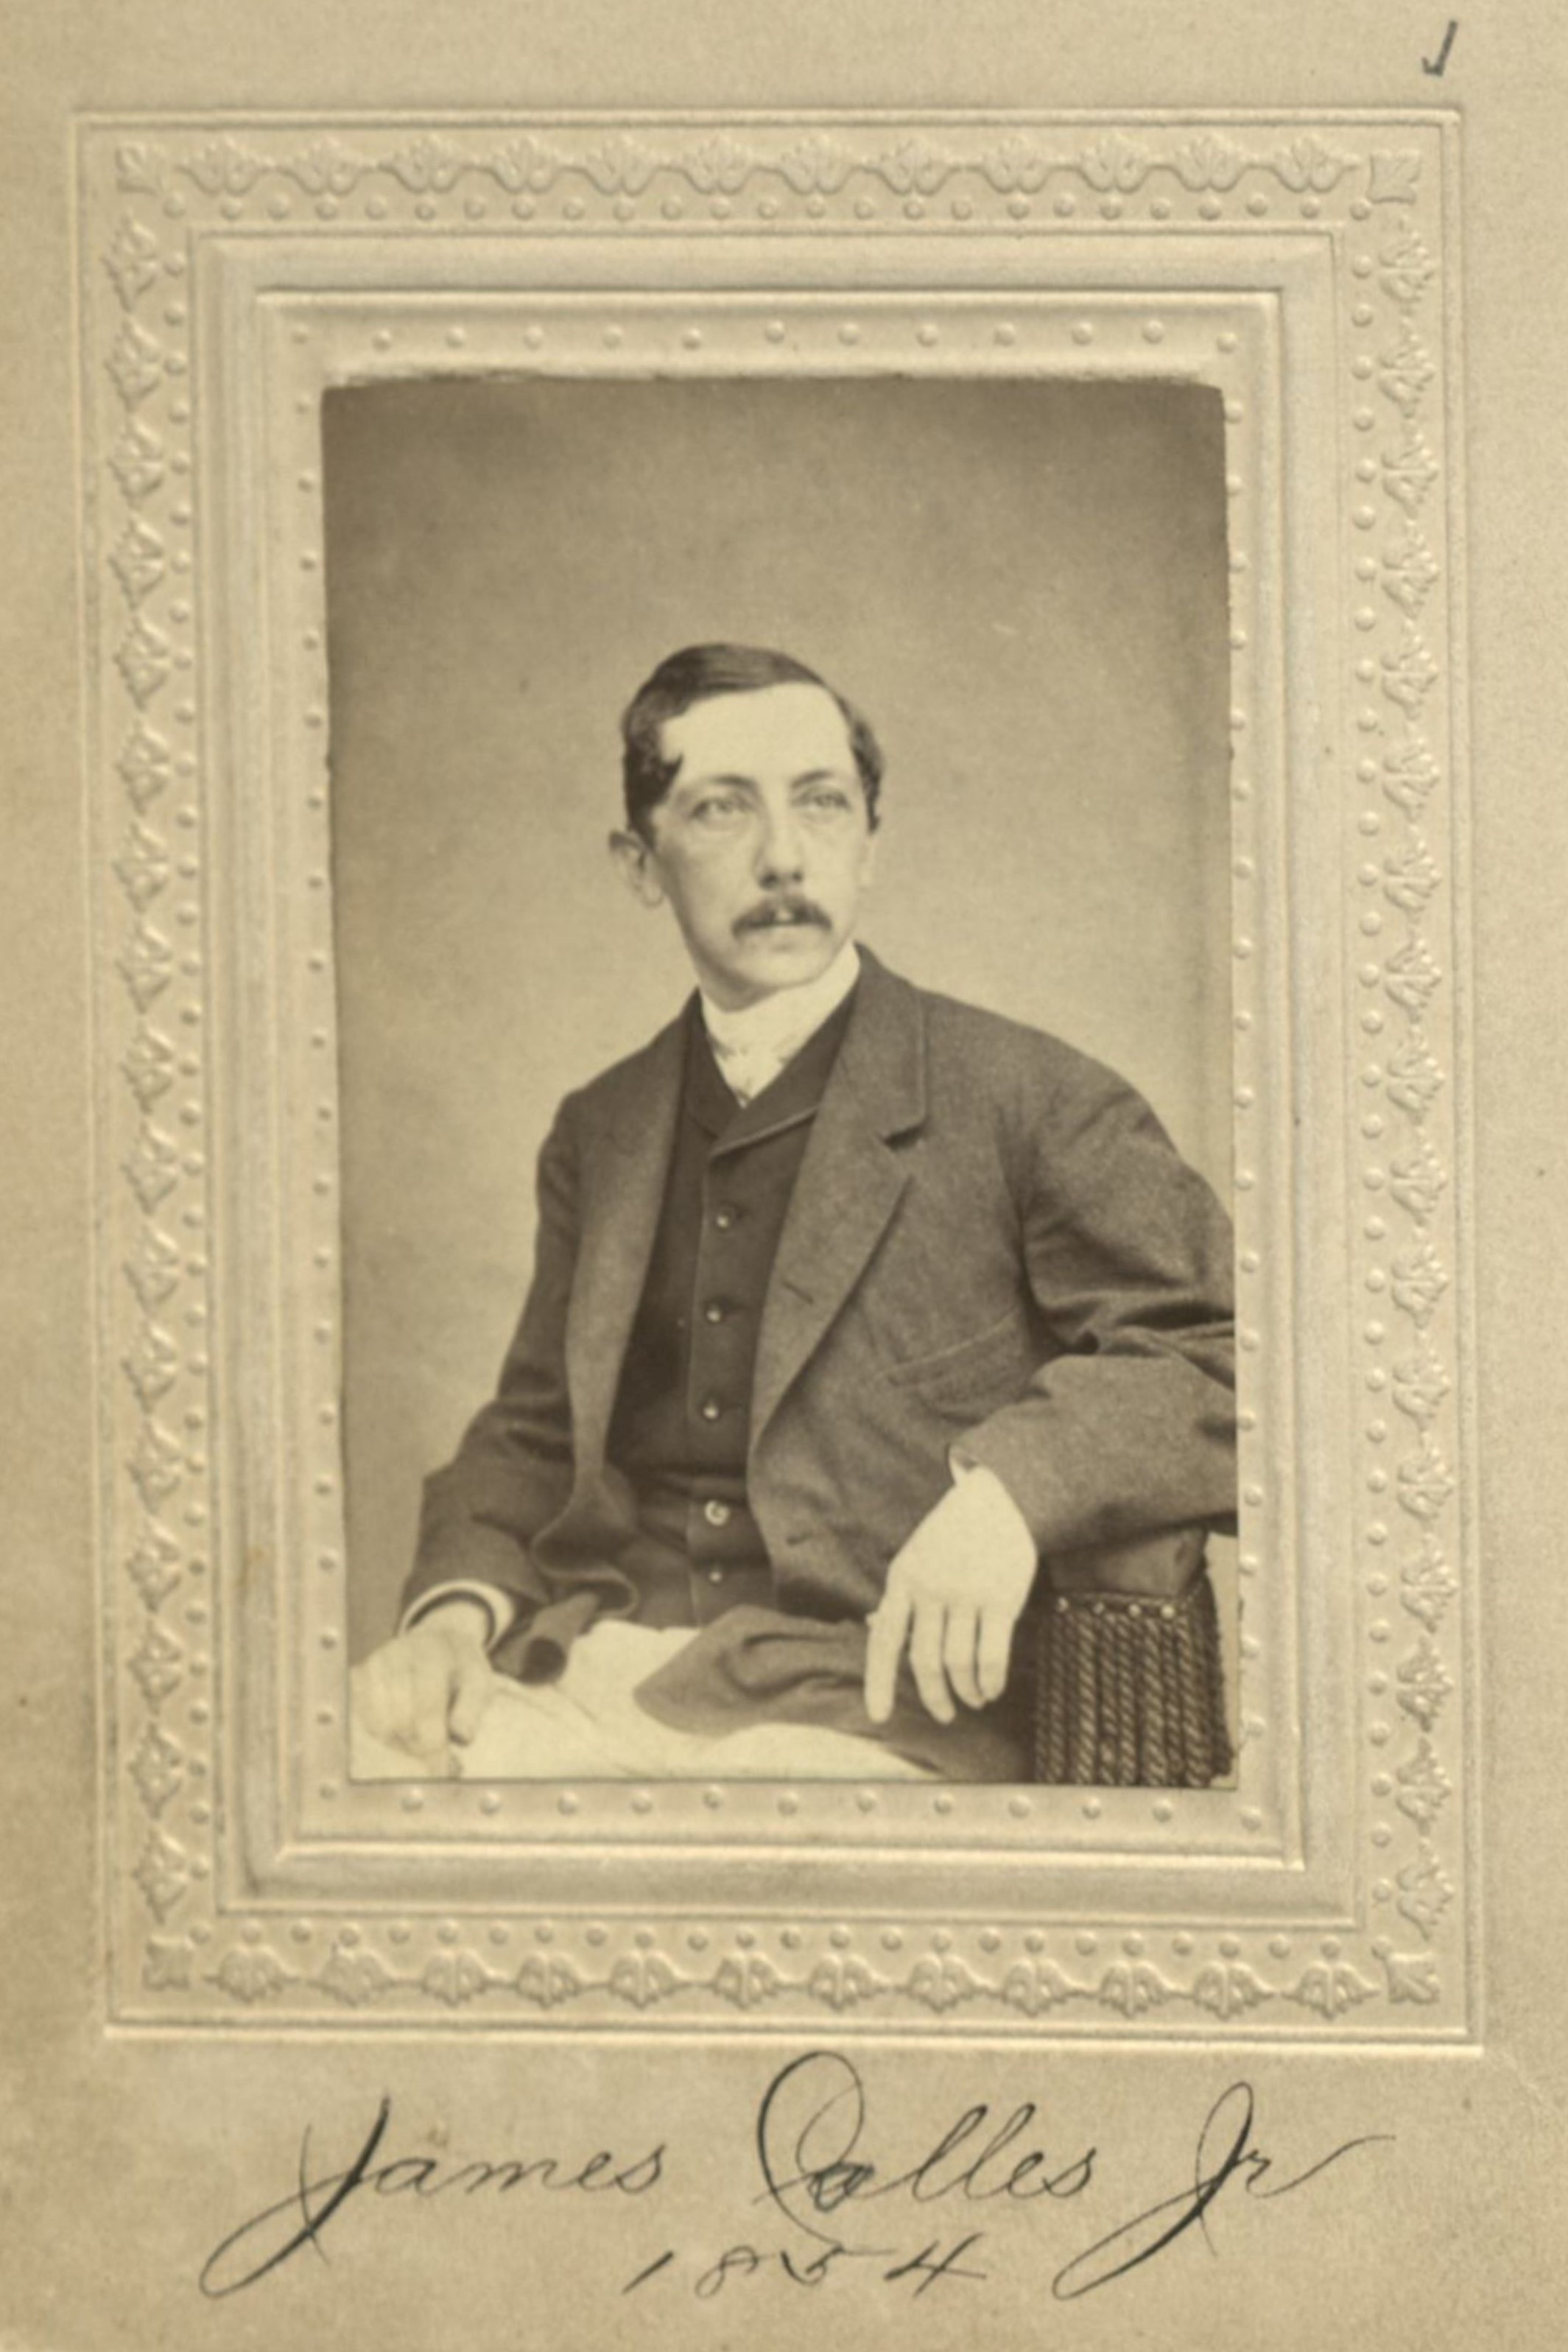 Member portrait of James Colles Jr.